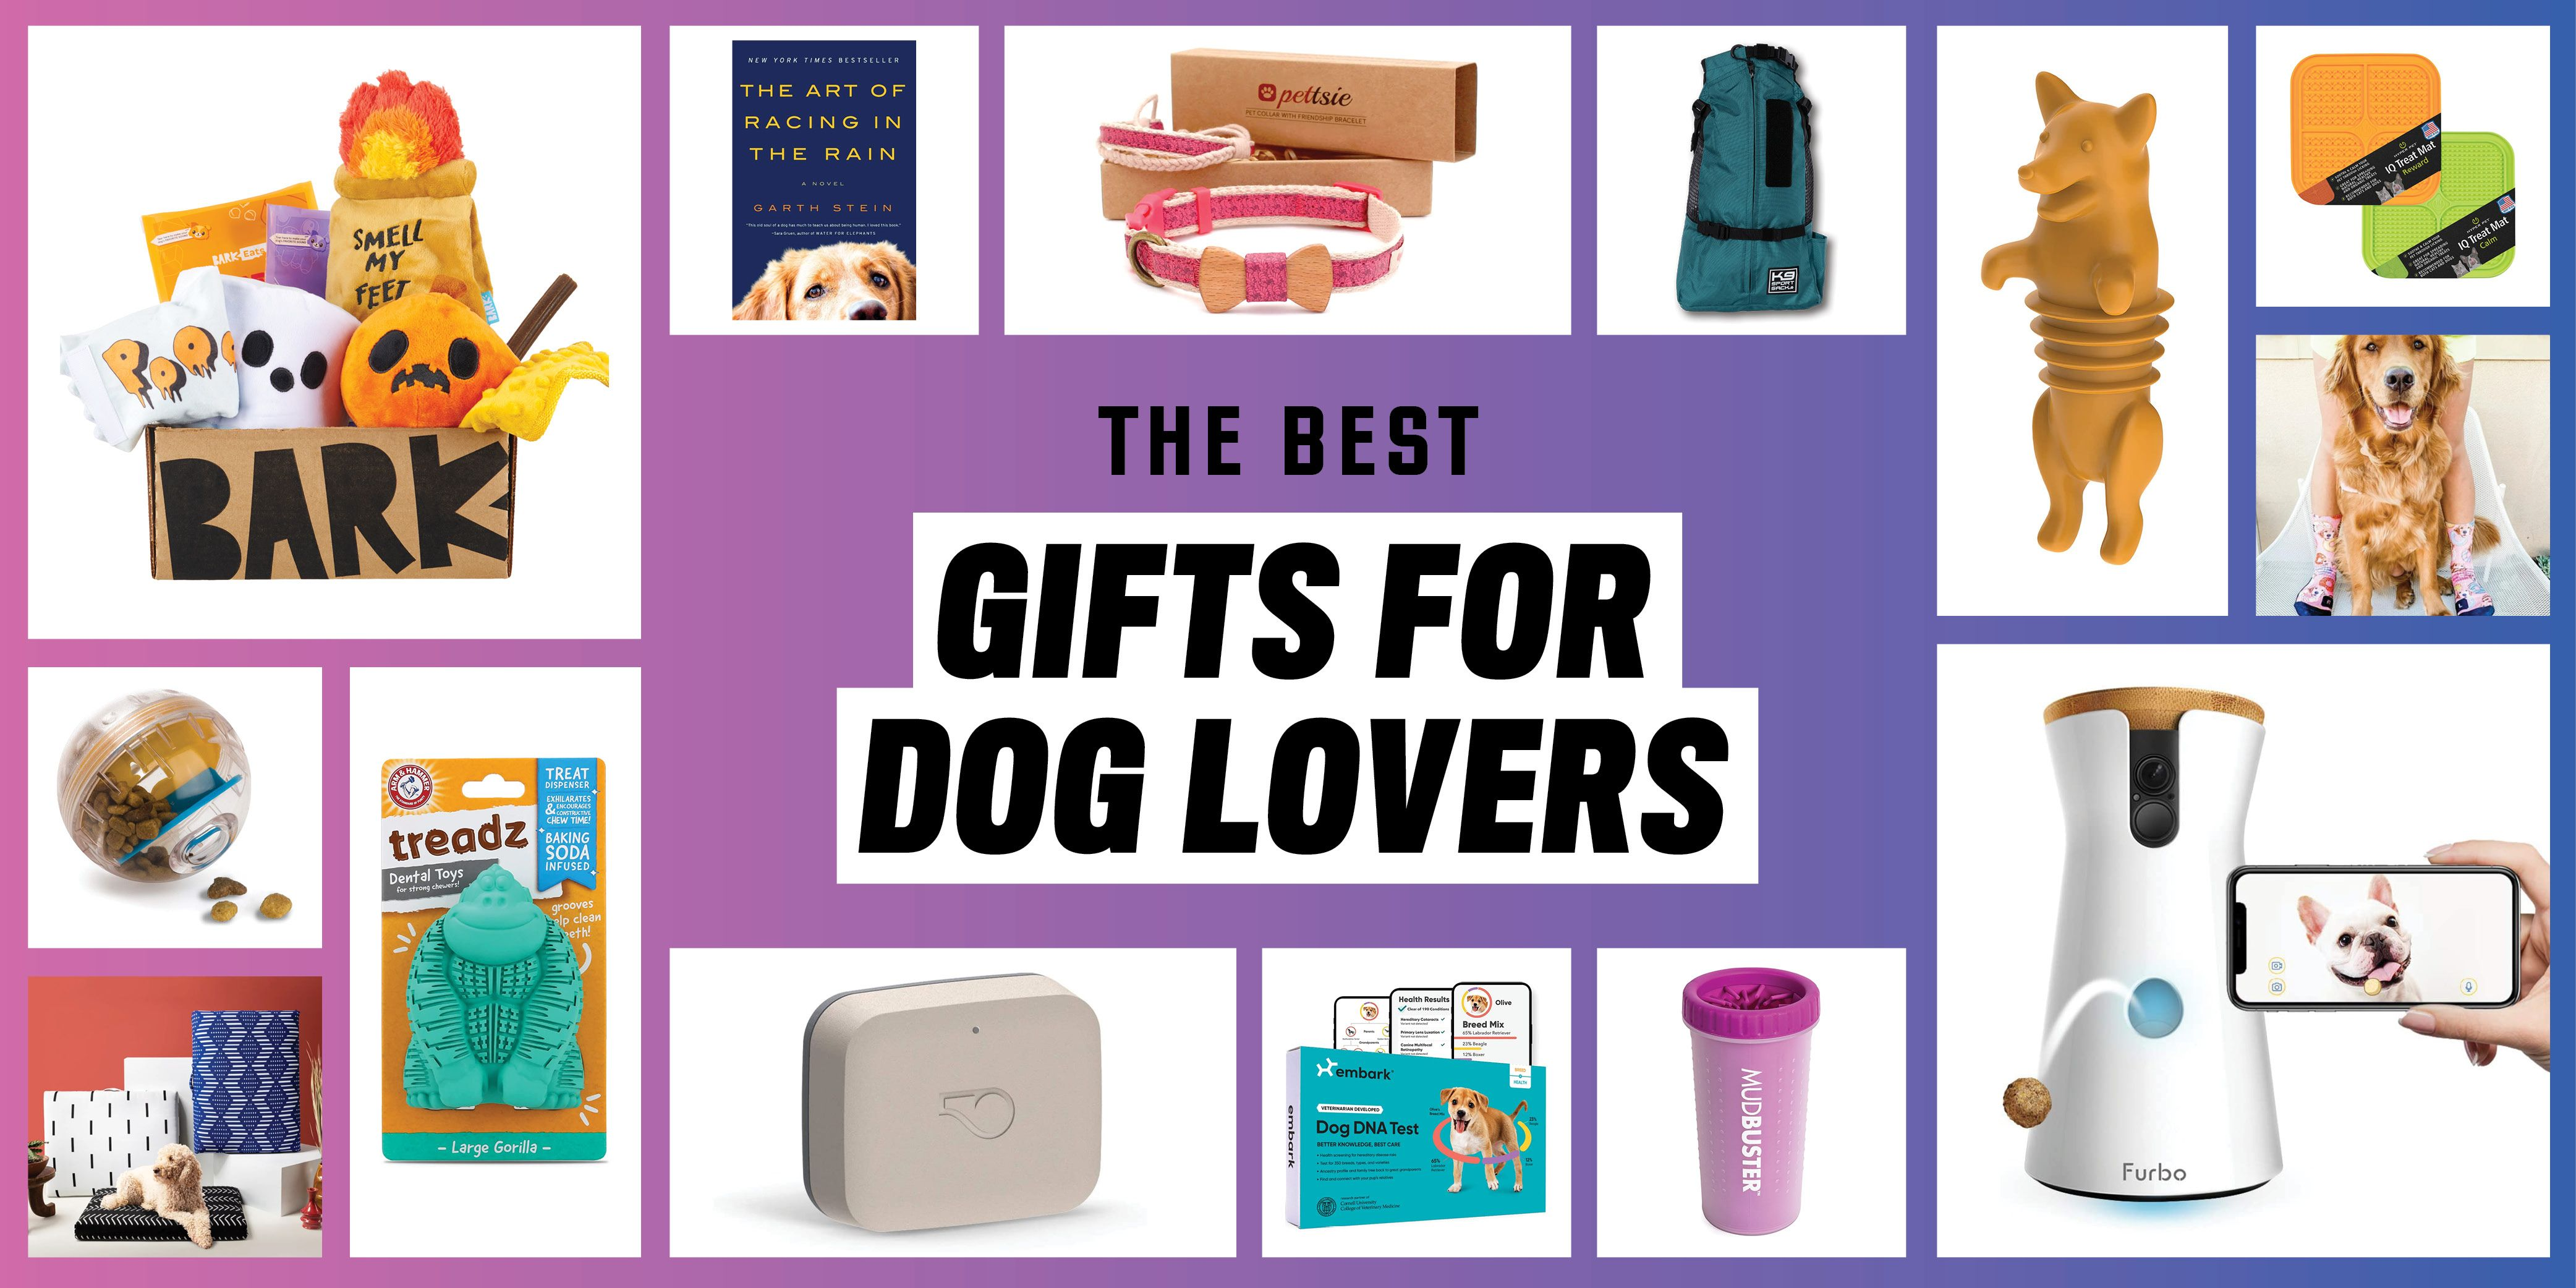 The 20 Best Gifts for Dog Lovers